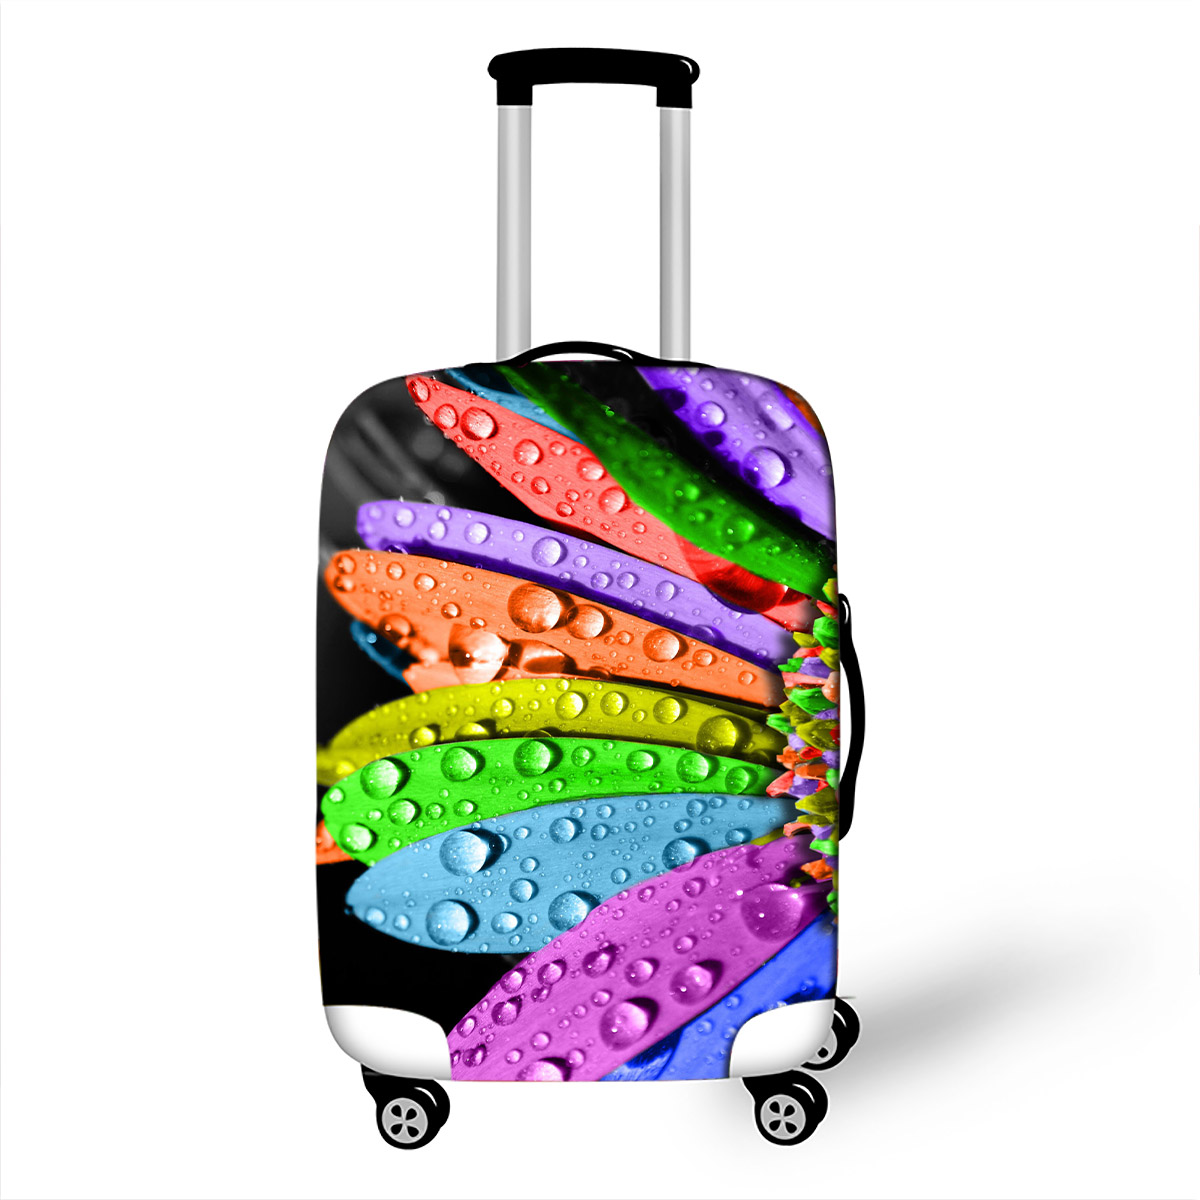 3D Flower Travel Luggage Protective Cover Suitable 18-32 Inch Women's Trolley Suitcase Elastic Trunk Case Dust Covers